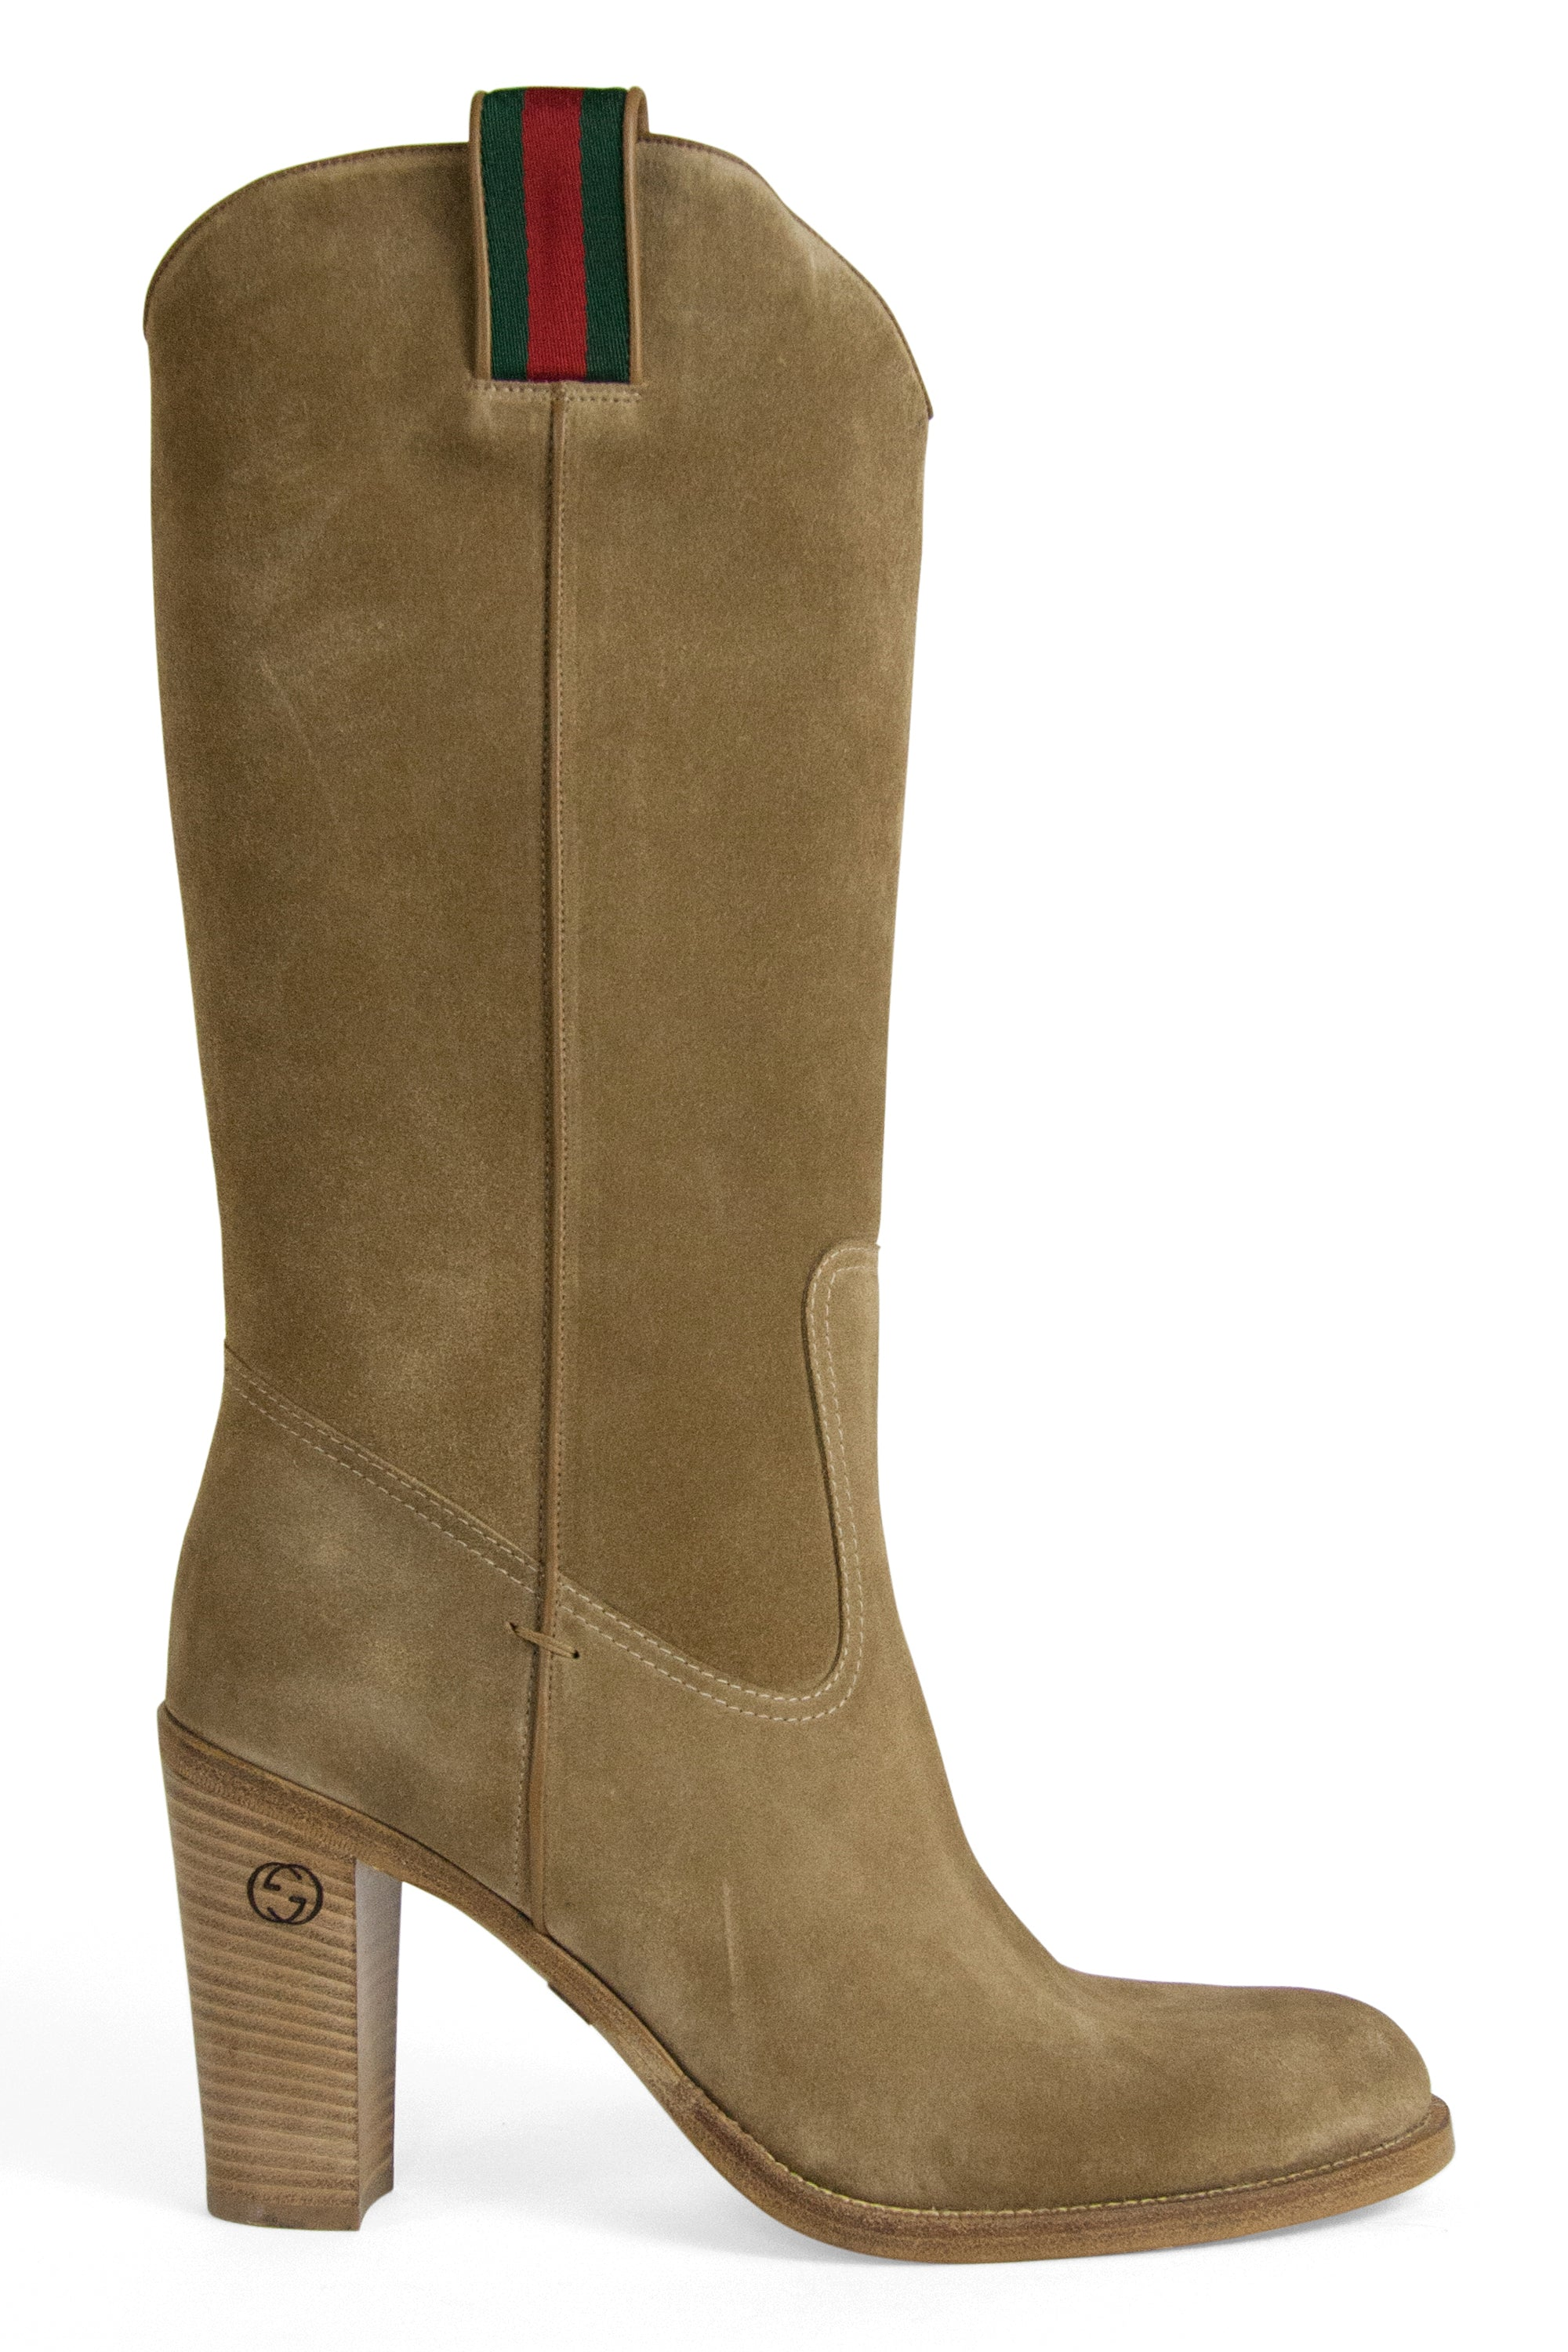 Treasure No.5 - GUCCI Stiefel